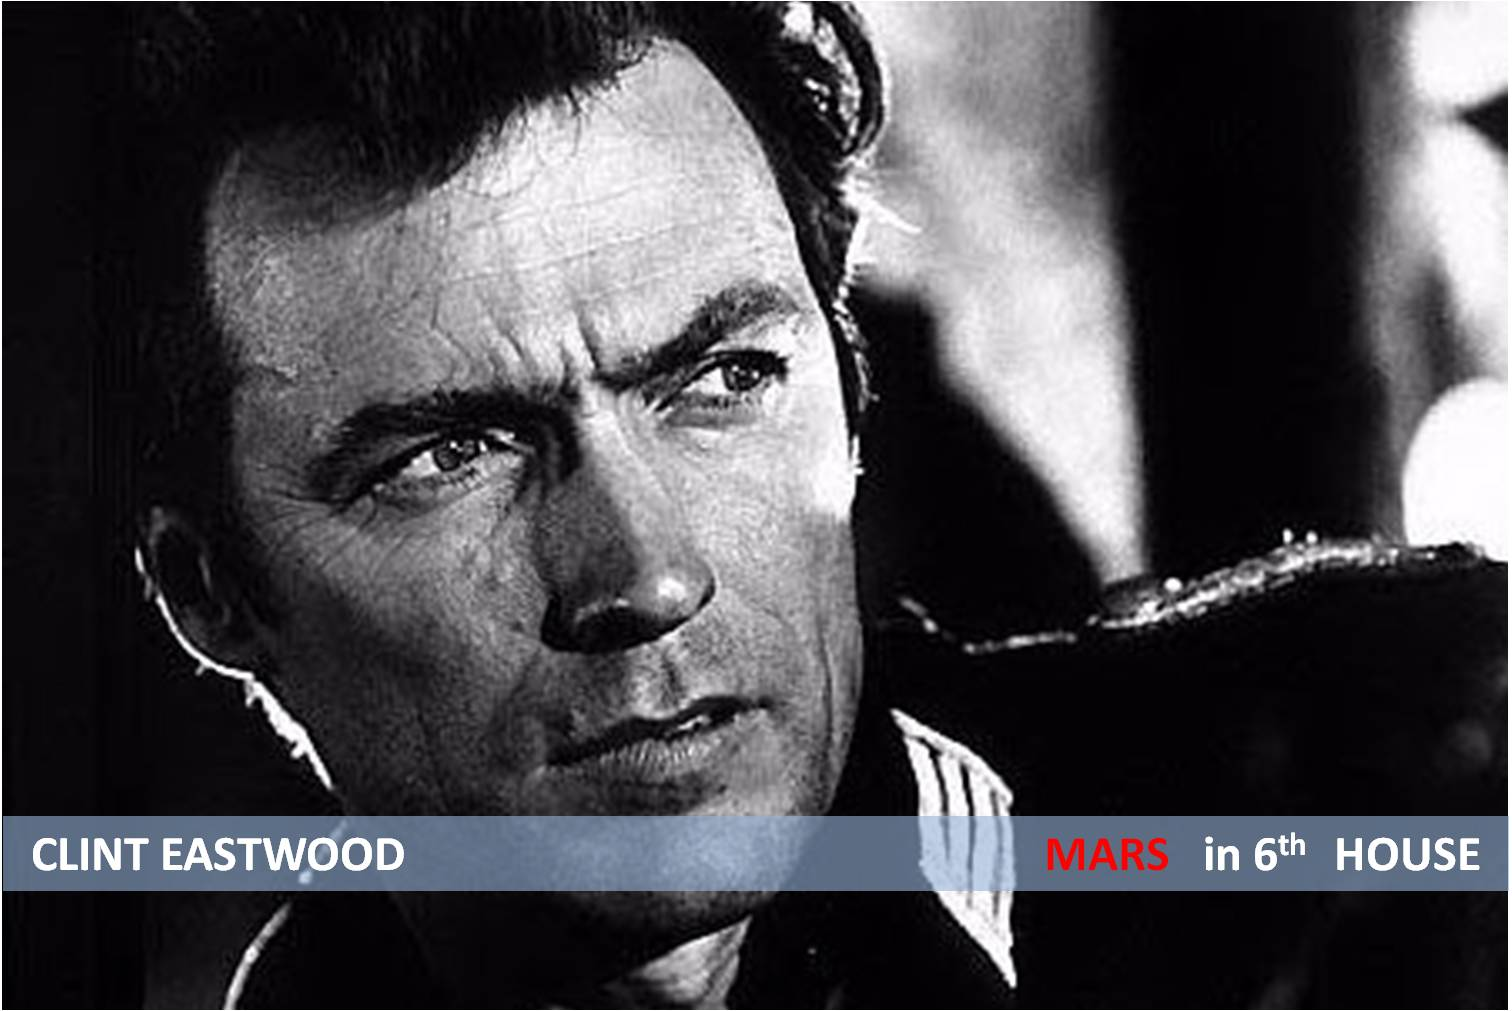 CLINT EASTWOOD – MARS  in the 6th HOUSE